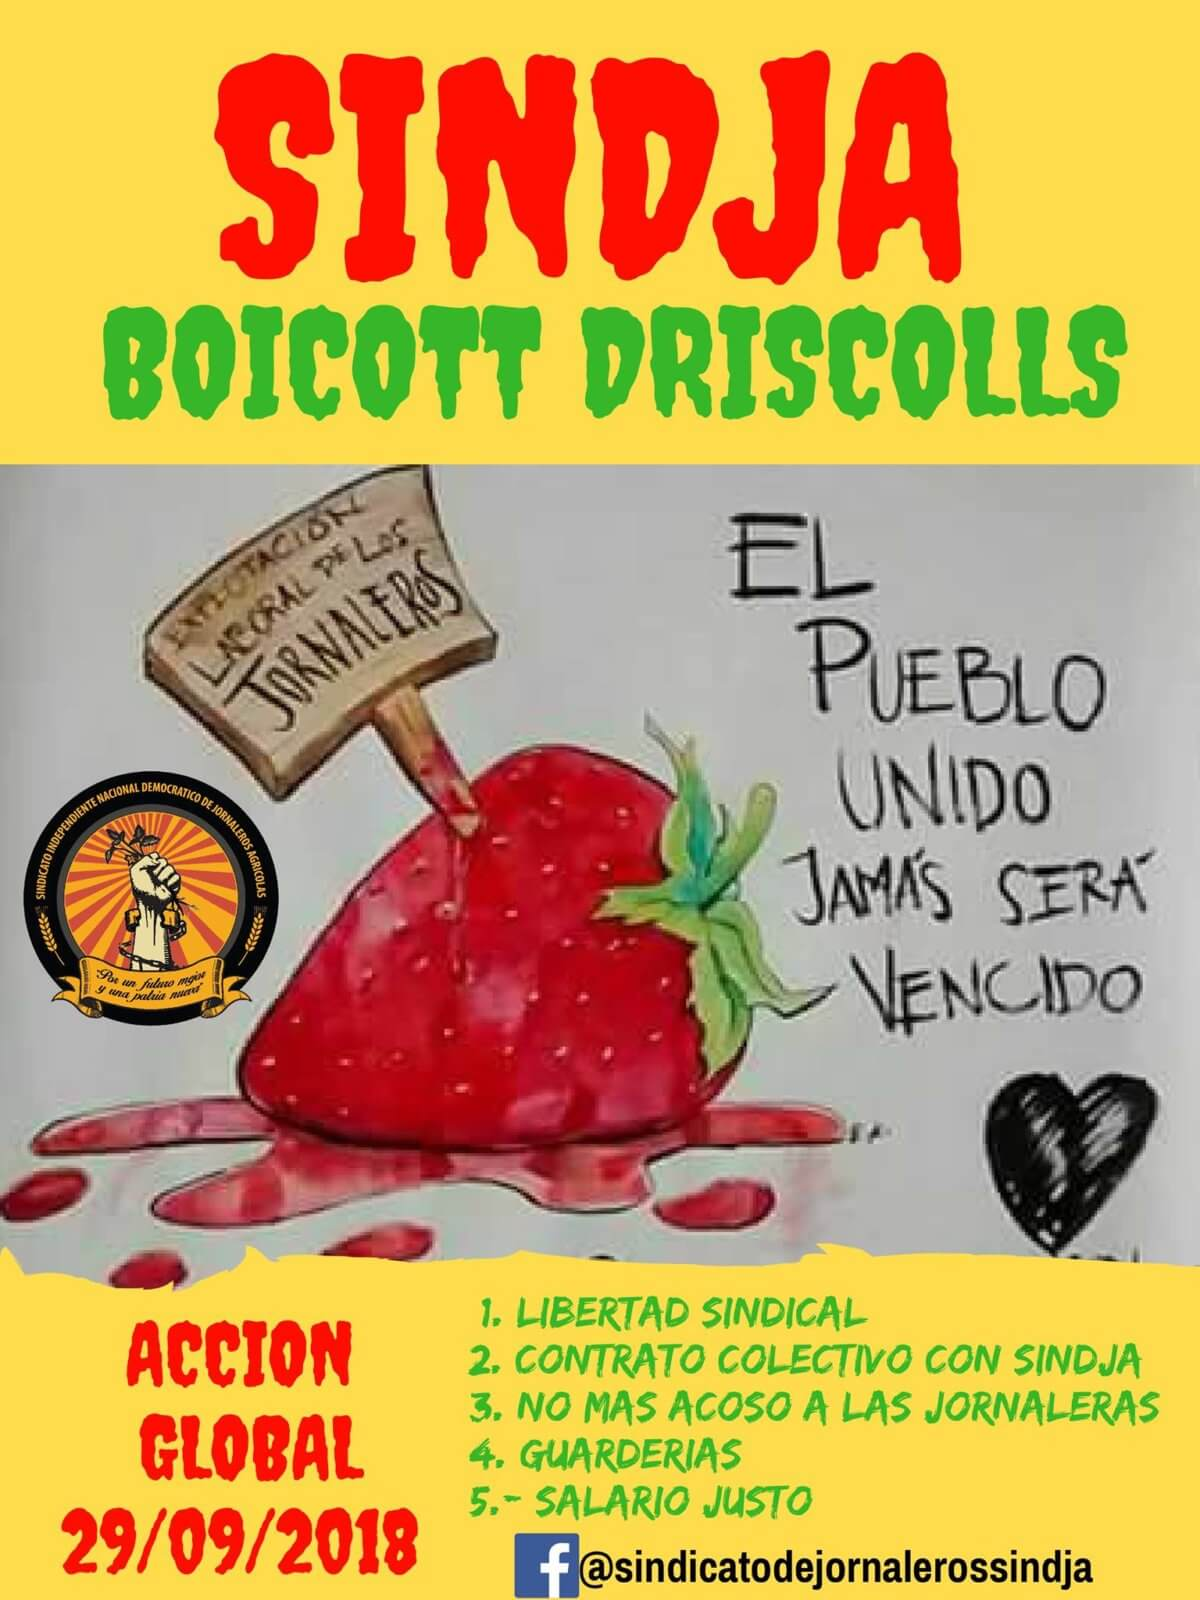 Boycott Driscoll's! Global Action on September 29, 2018